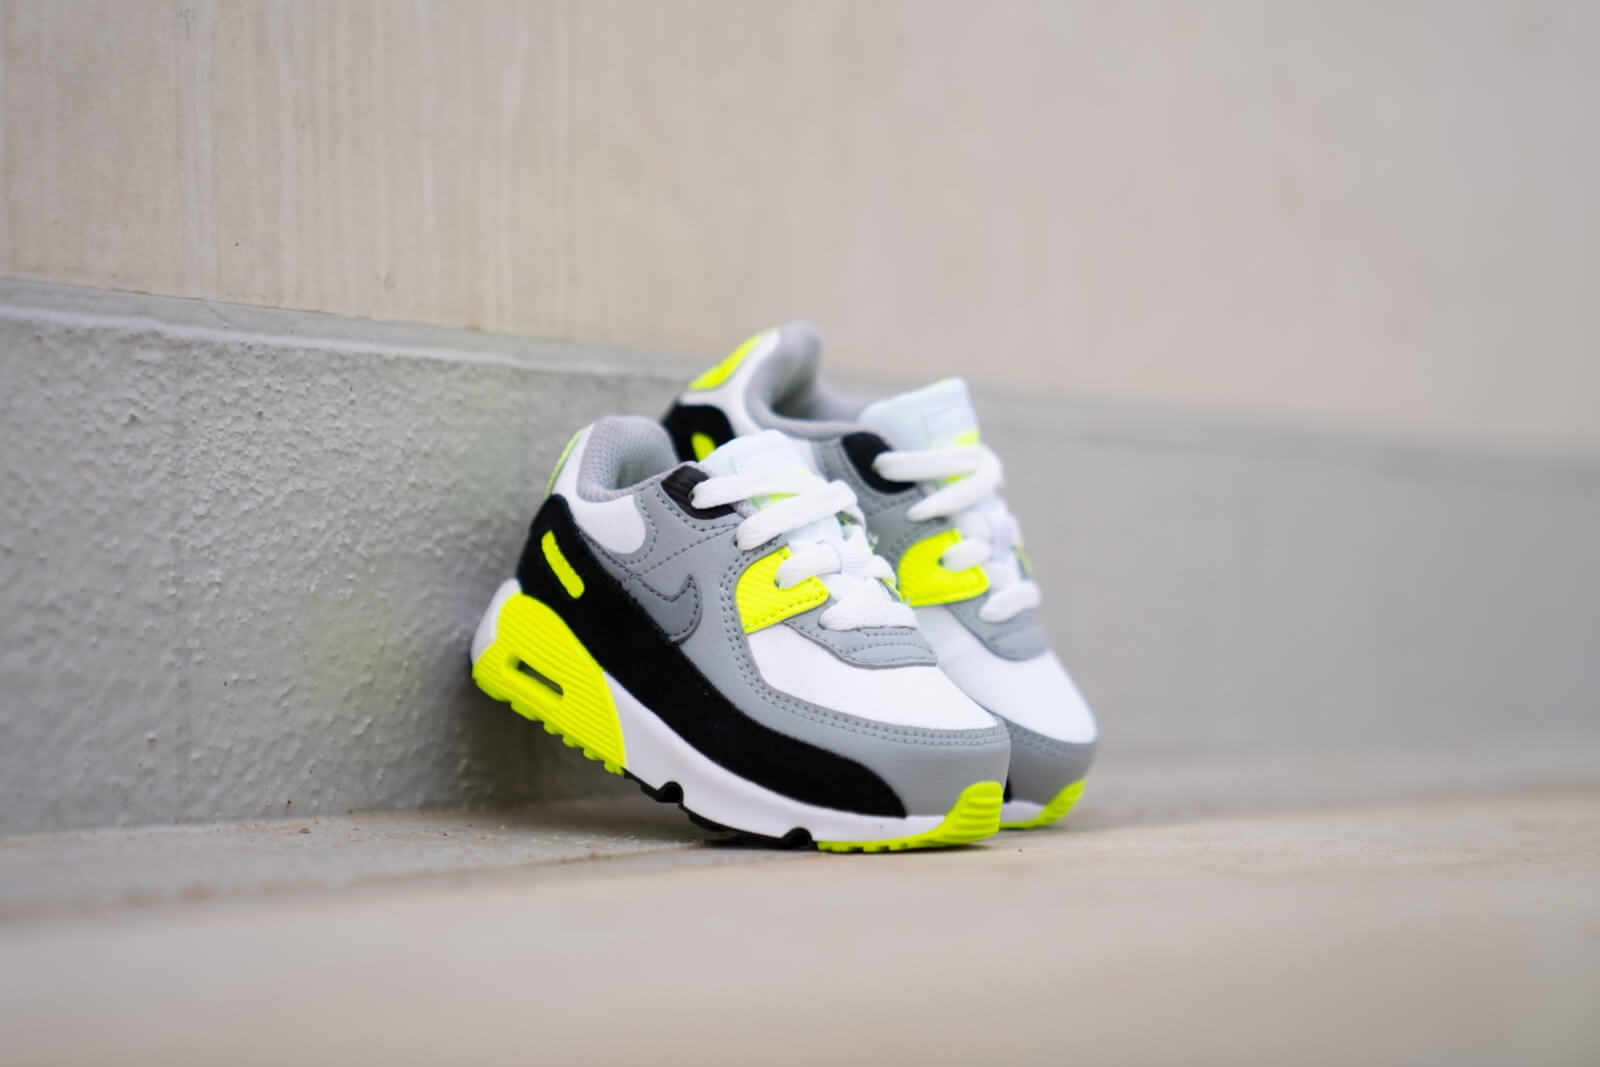 Nike Air Max 90 TD White/Particle Grey